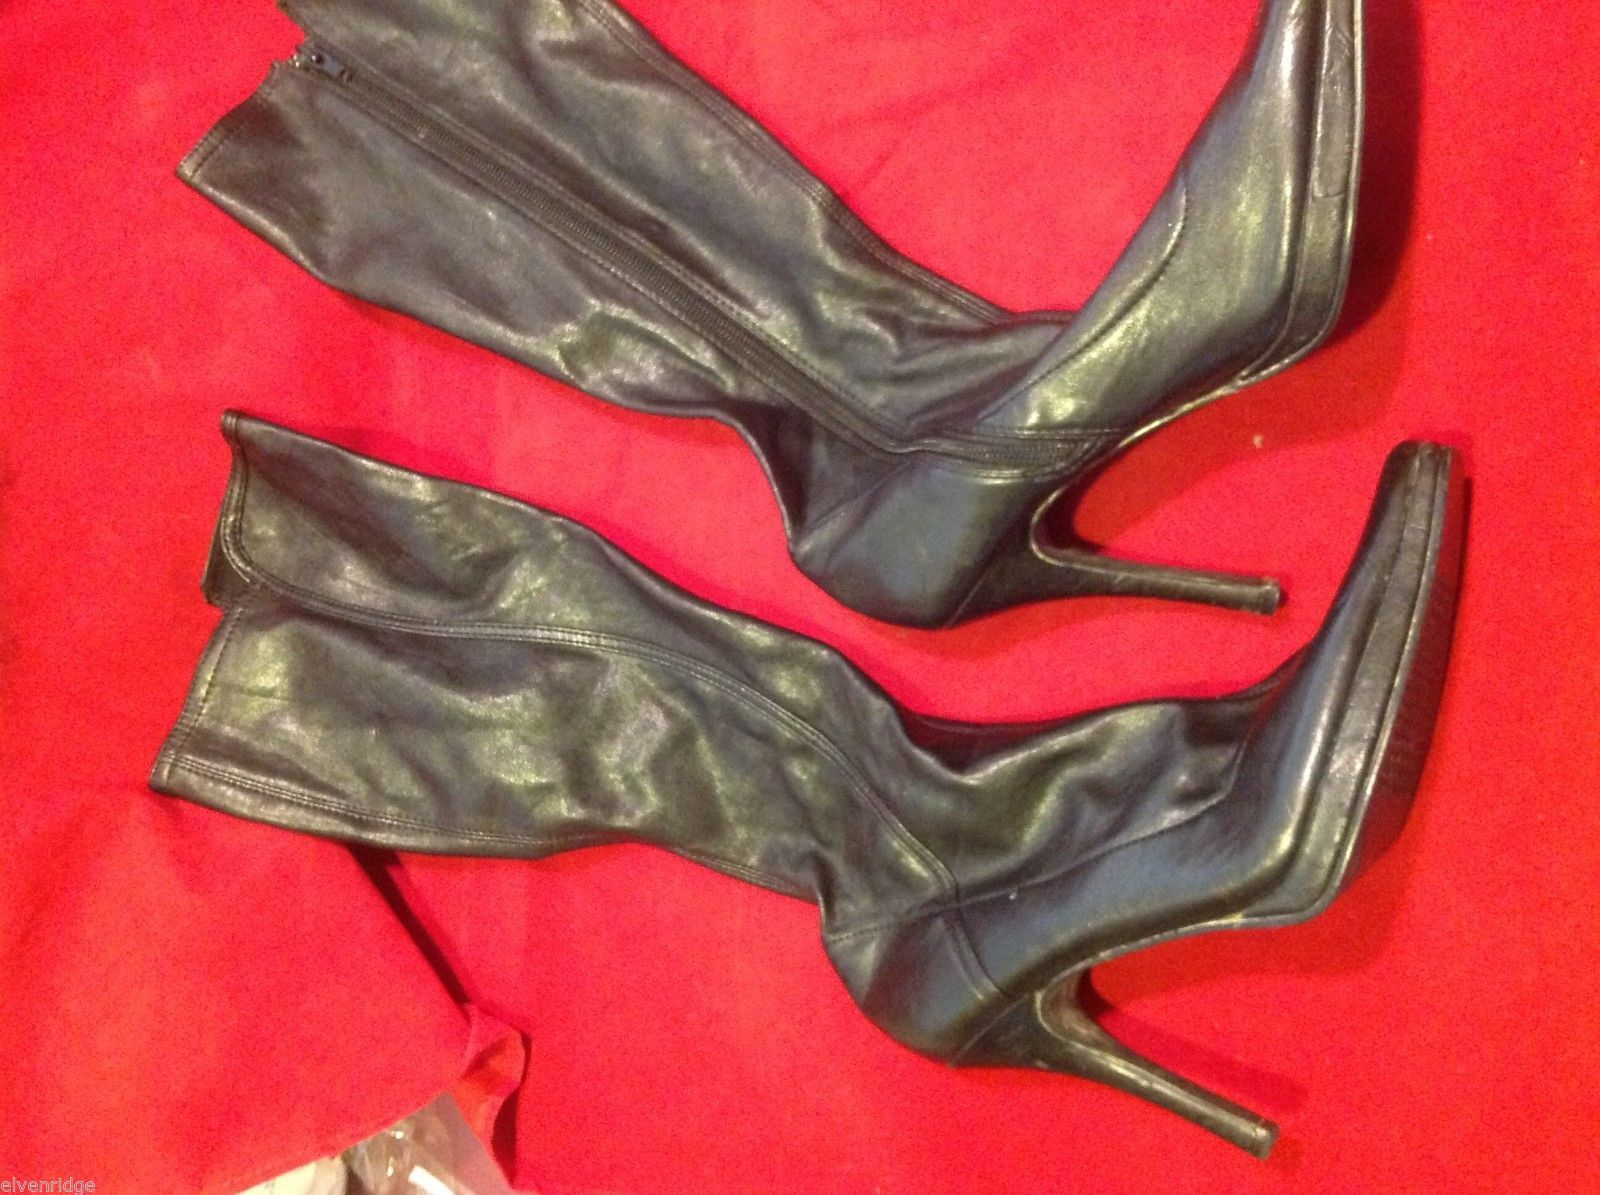 Chinese Laundry leather knee high dress boots size 8 1/2 8.5 with heels